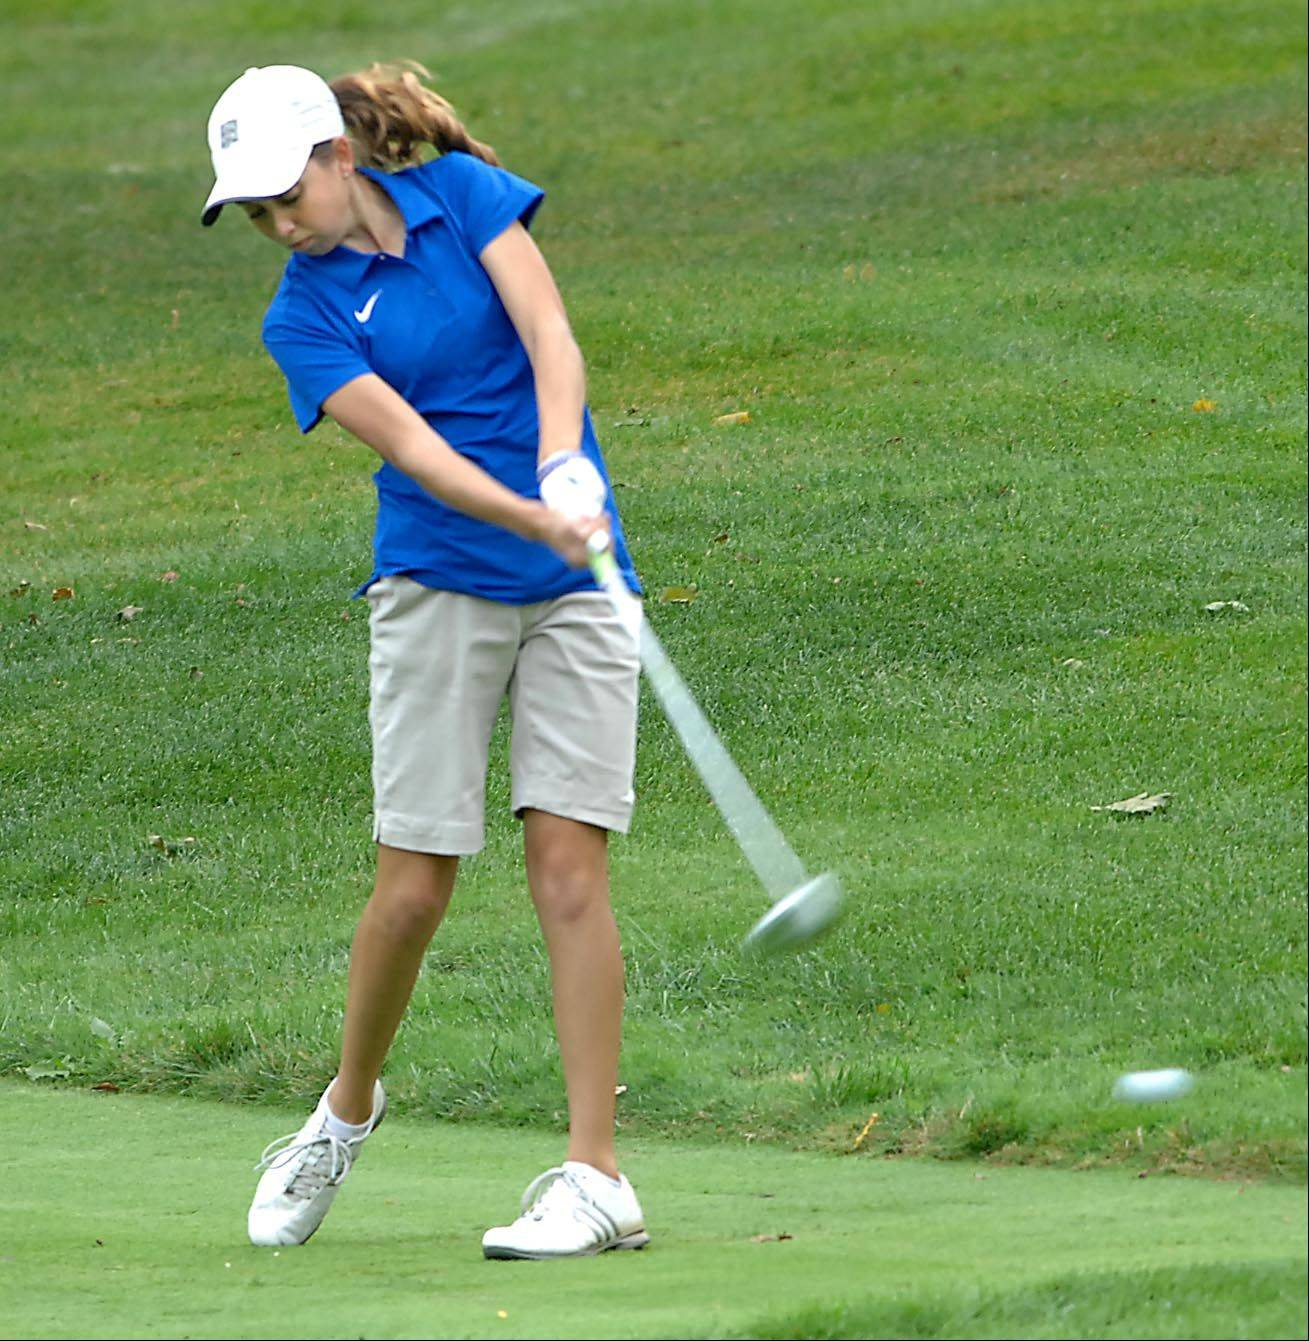 Alison Smith of Larkin/Elgin Co-op tees off Monday at the Elgin Country Club girls golf invitational.